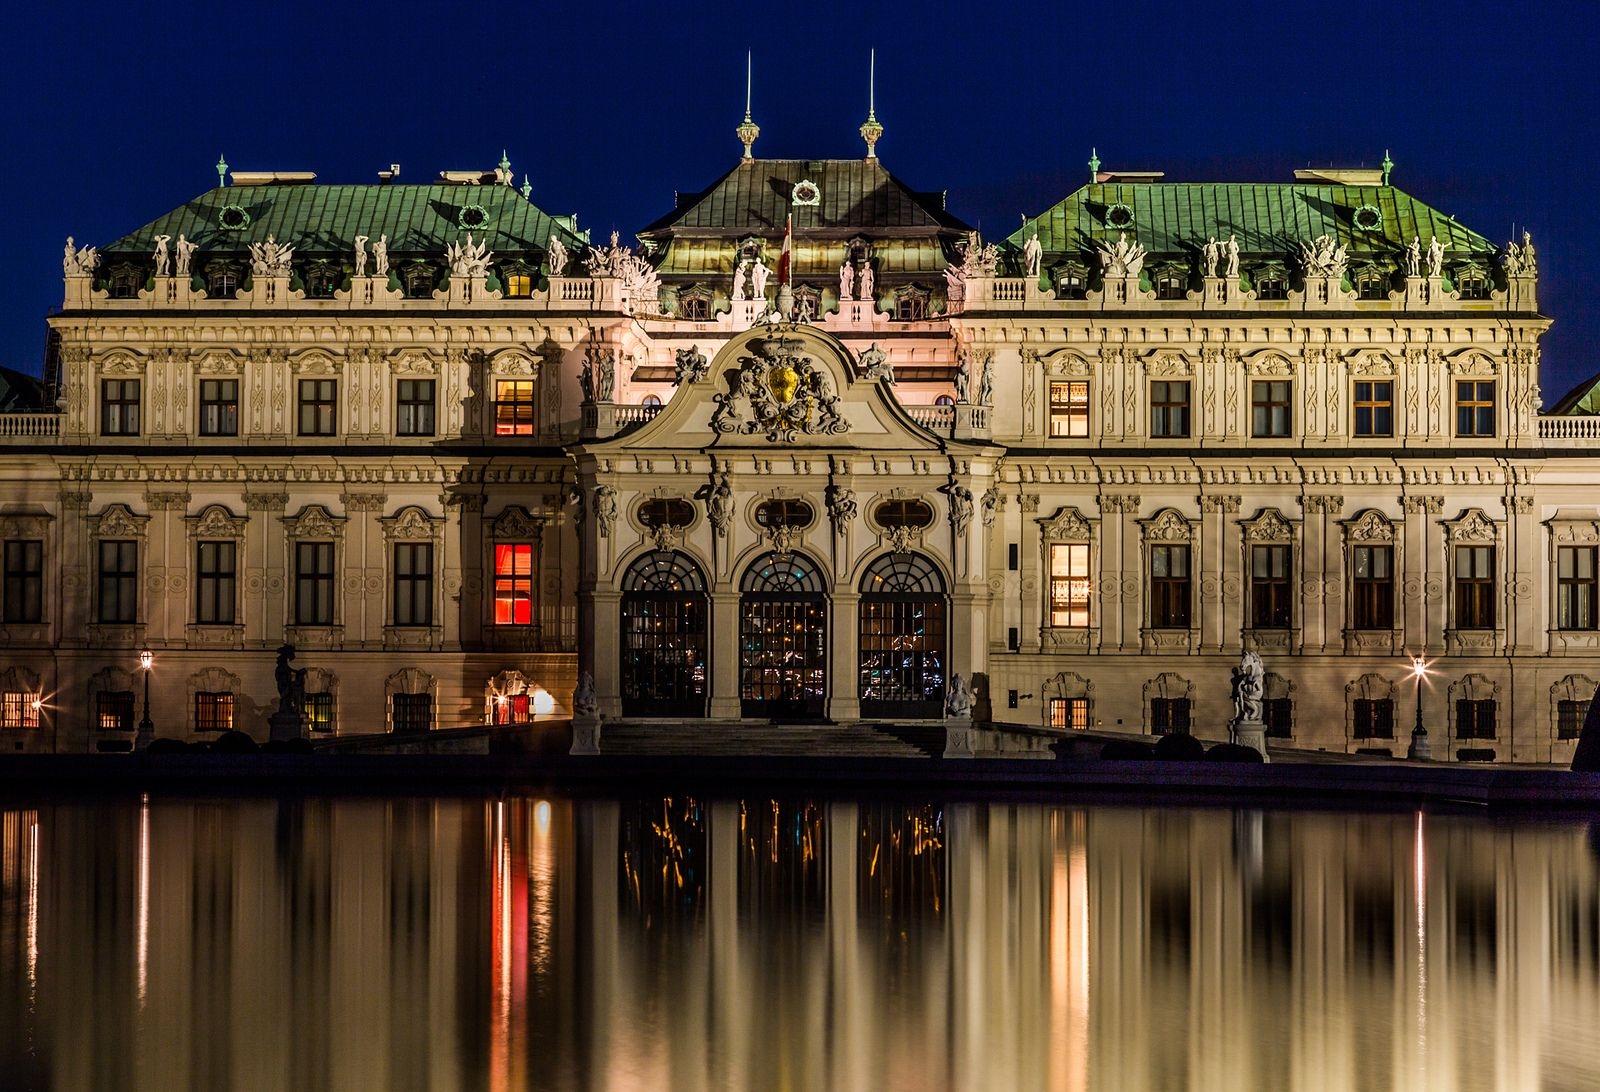 https://flic.kr/p/rsFTuA | Wien / Vienna (Austria): Belvedere | Schloss Belvedere in der Abenddämmerung.  Upper Belvedere Palace in the evening.  More shots from Vienna and vicinity at   www.flickr.com/photos/cbrug/sets/72157645577360467/